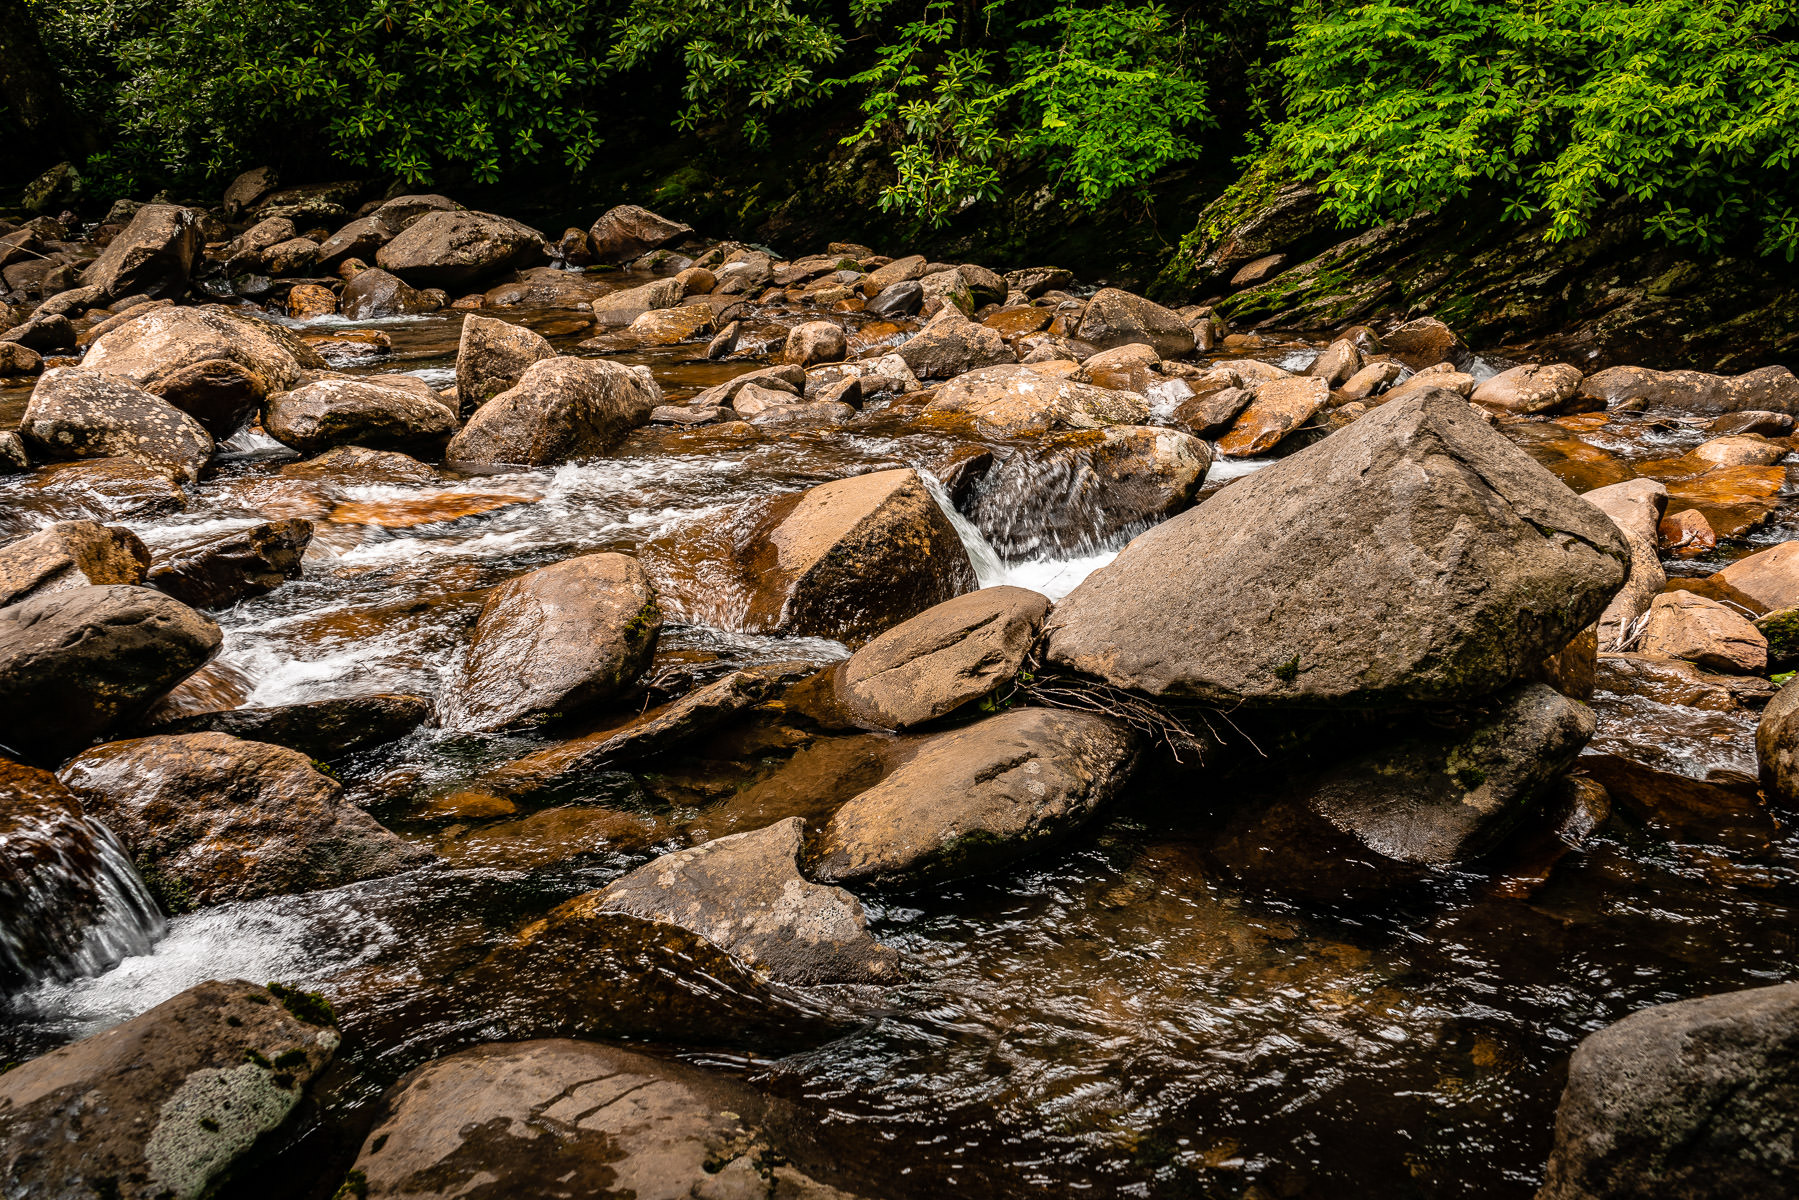 A stream flows over rocks in the Great Smoky Mountains National Park, Tennessee.